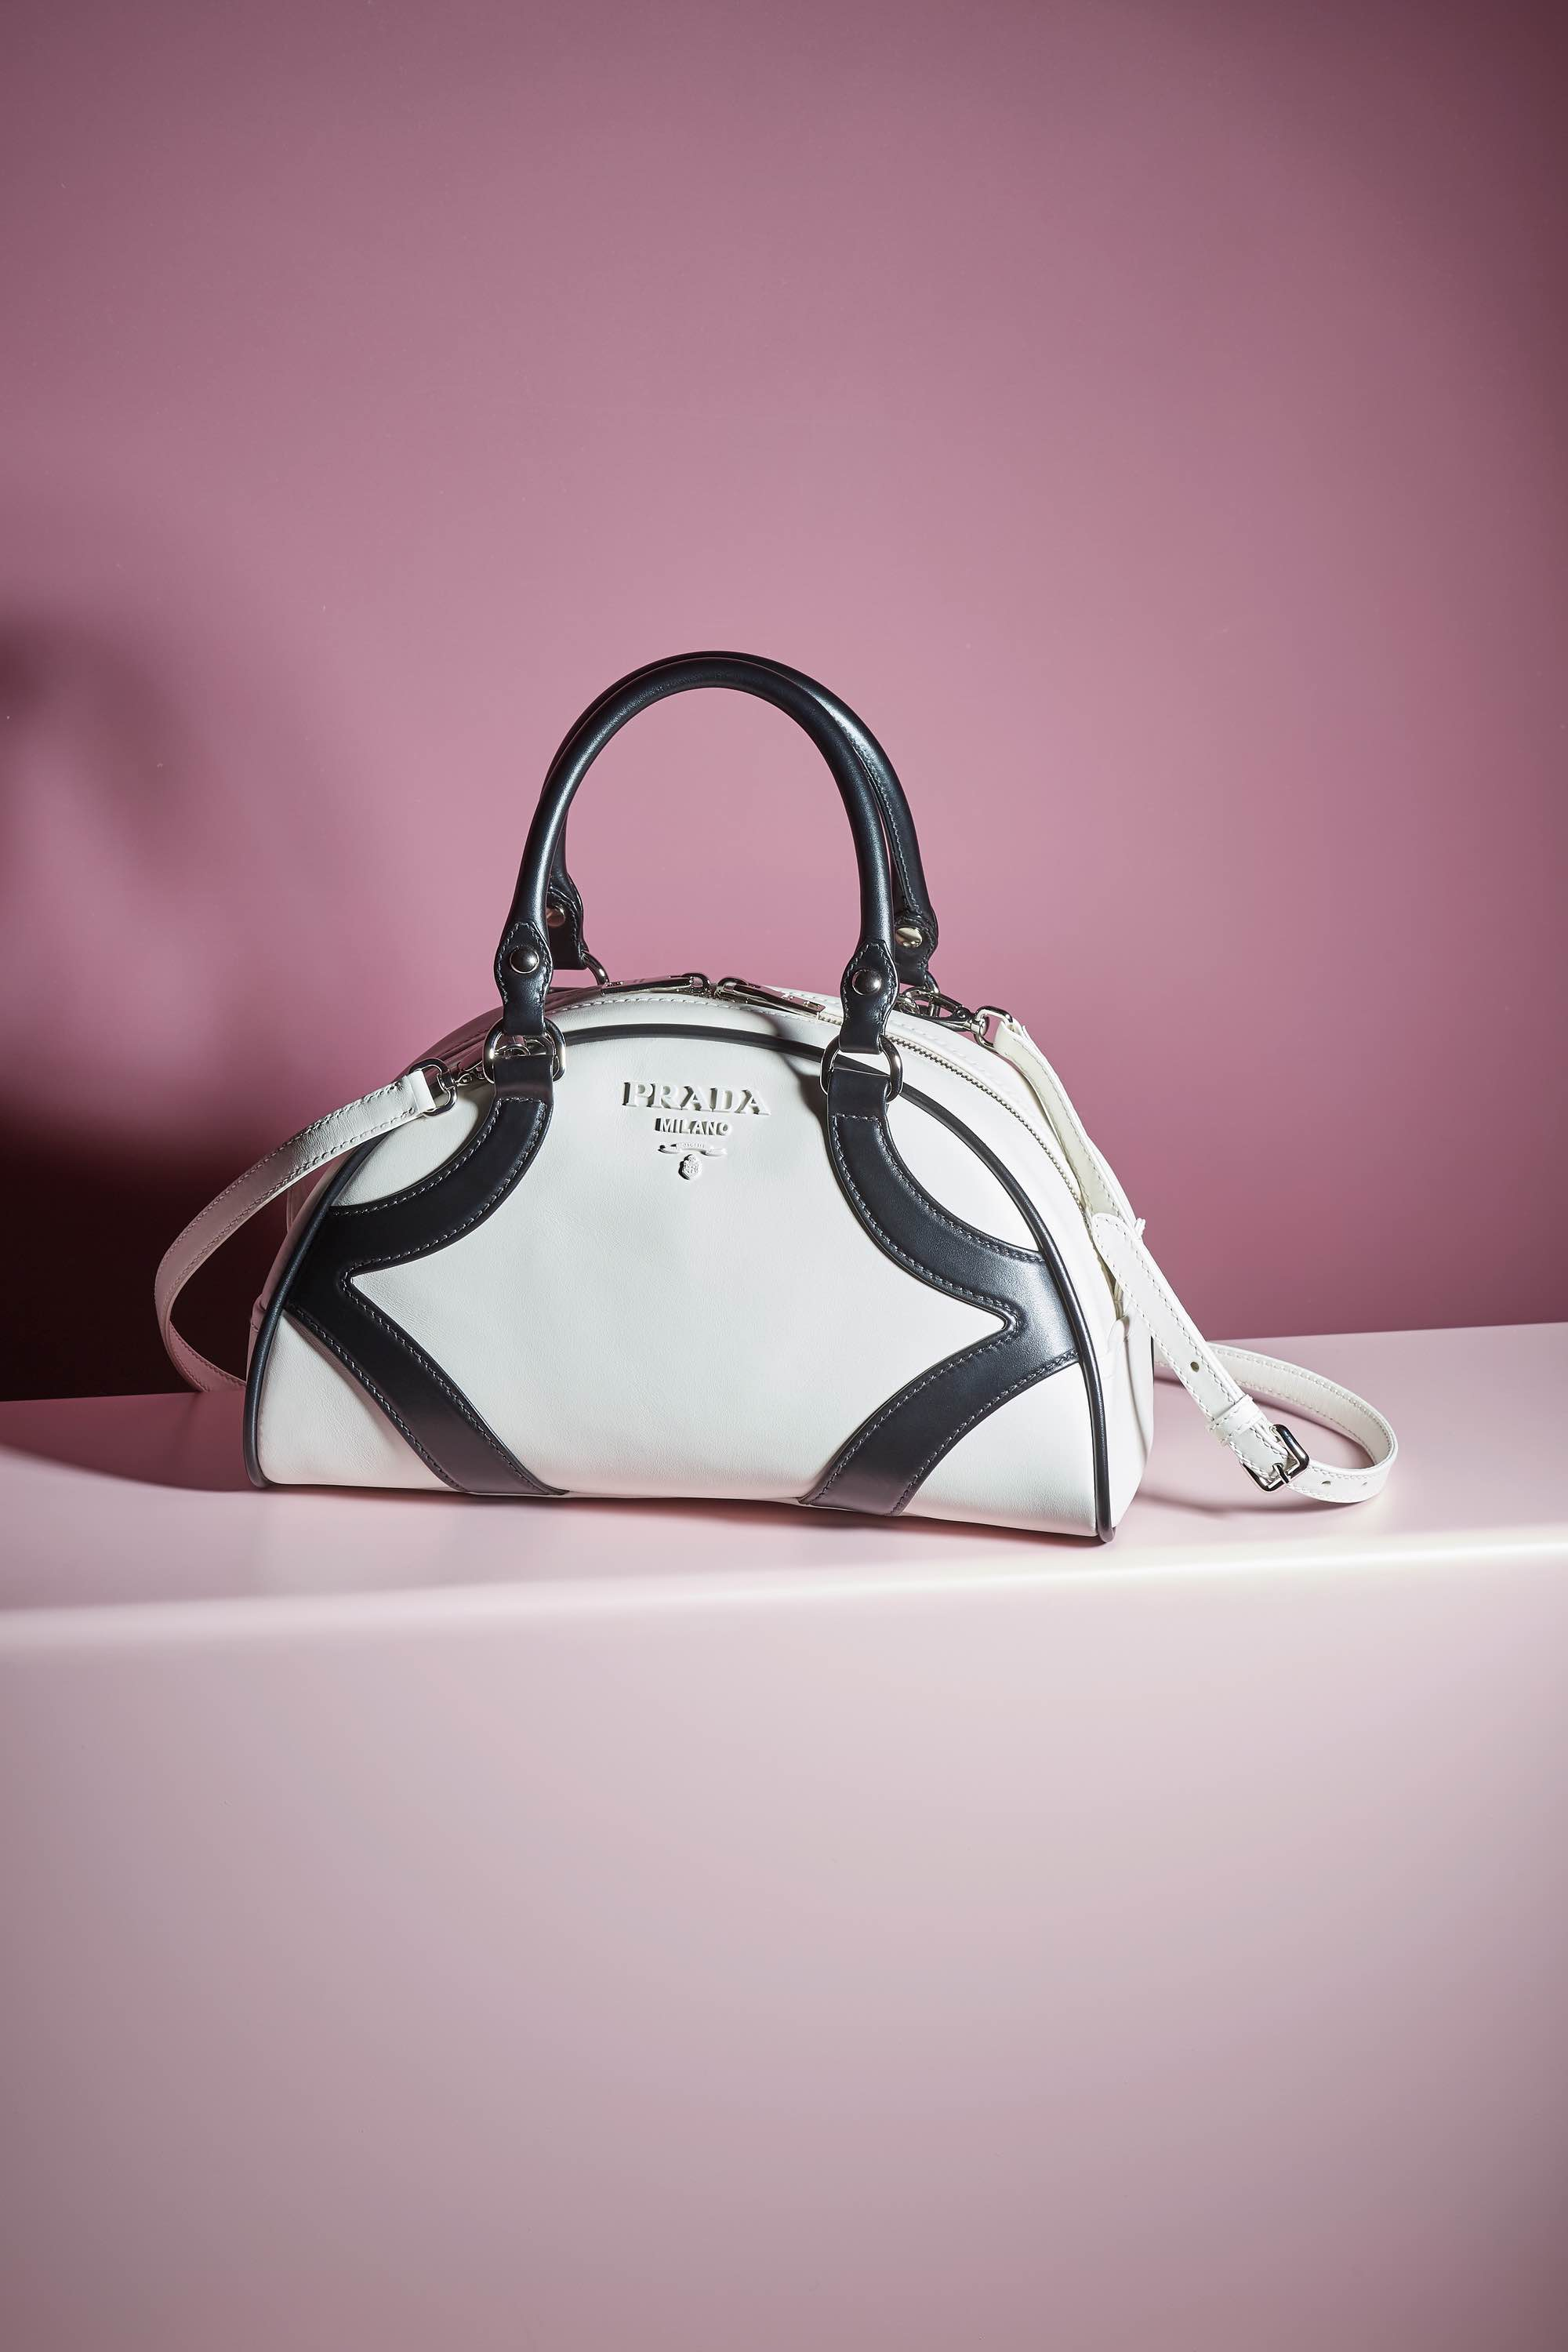 black and white Prada bowling bag resort 2020 collection